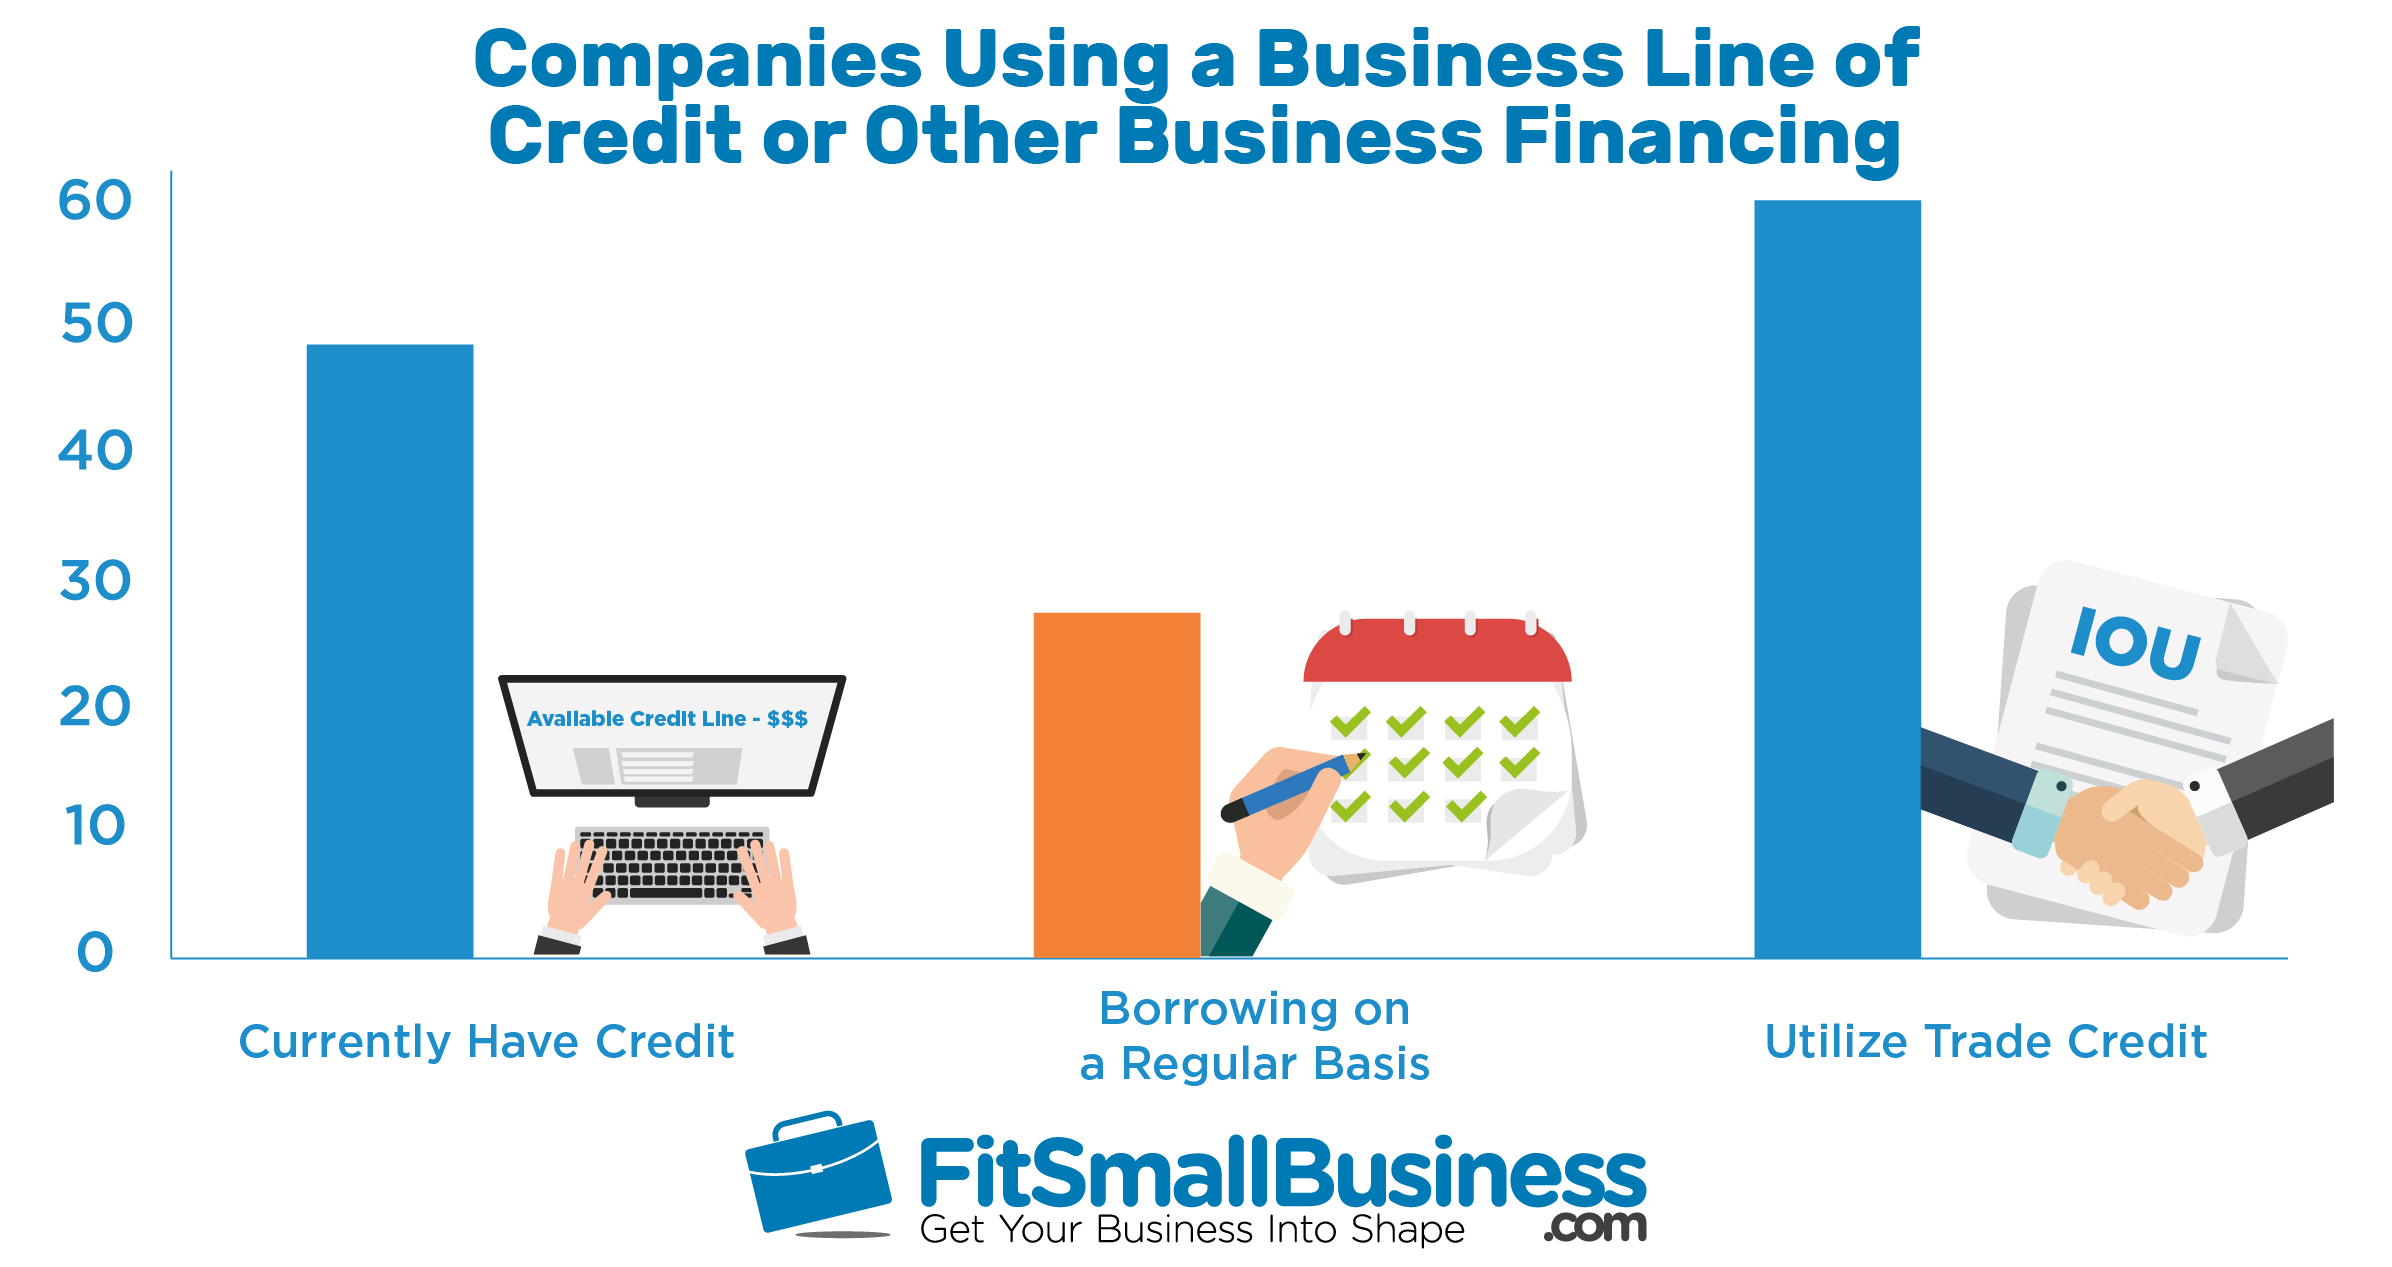 graph showing a comparison of companies using business lines of credit or other business financing